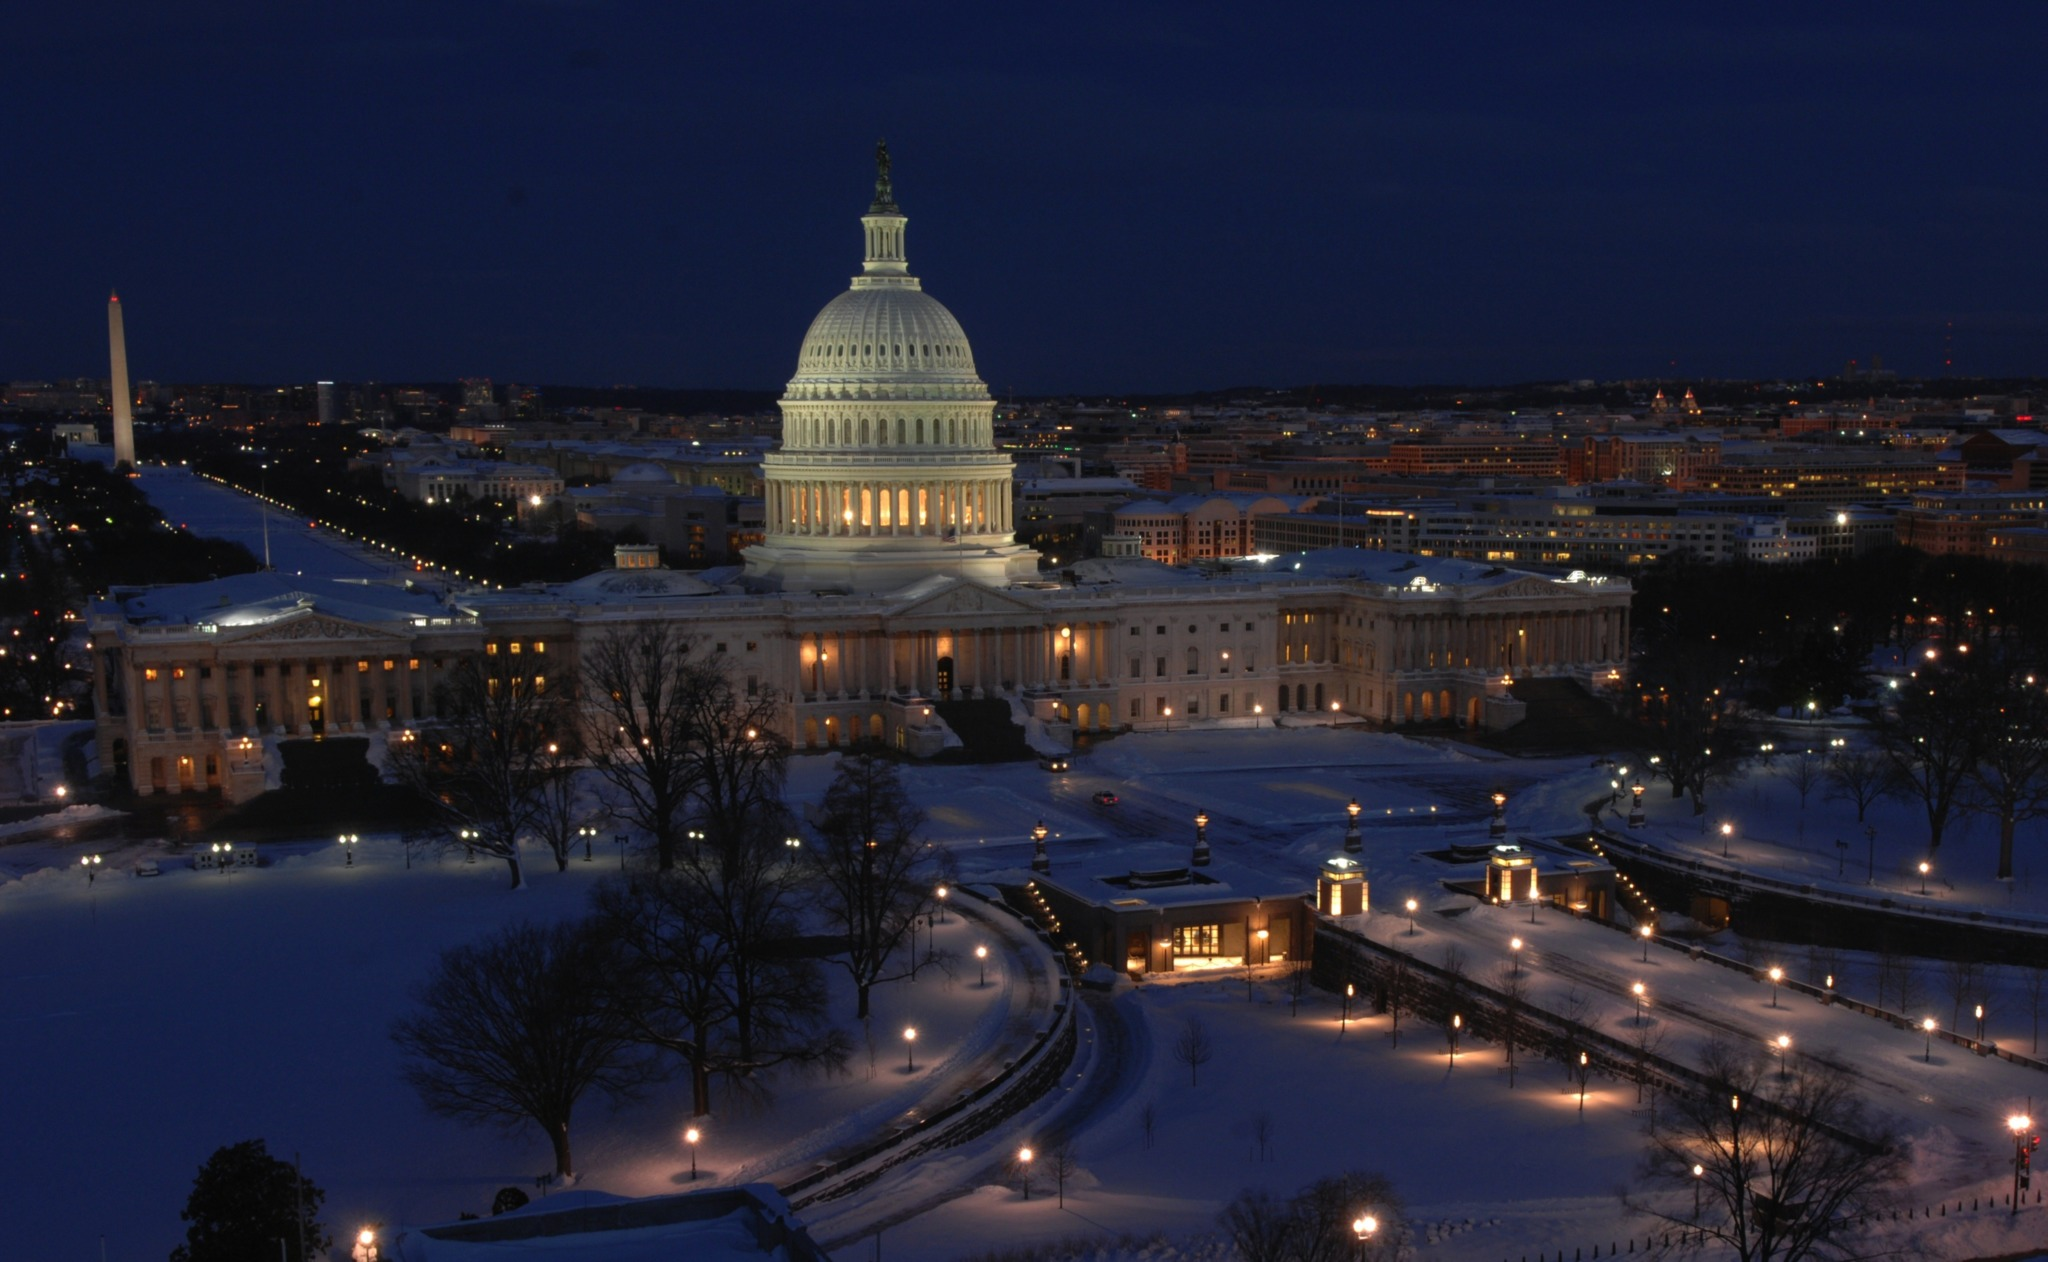 The Capitol Building and Washington D.C. in snow